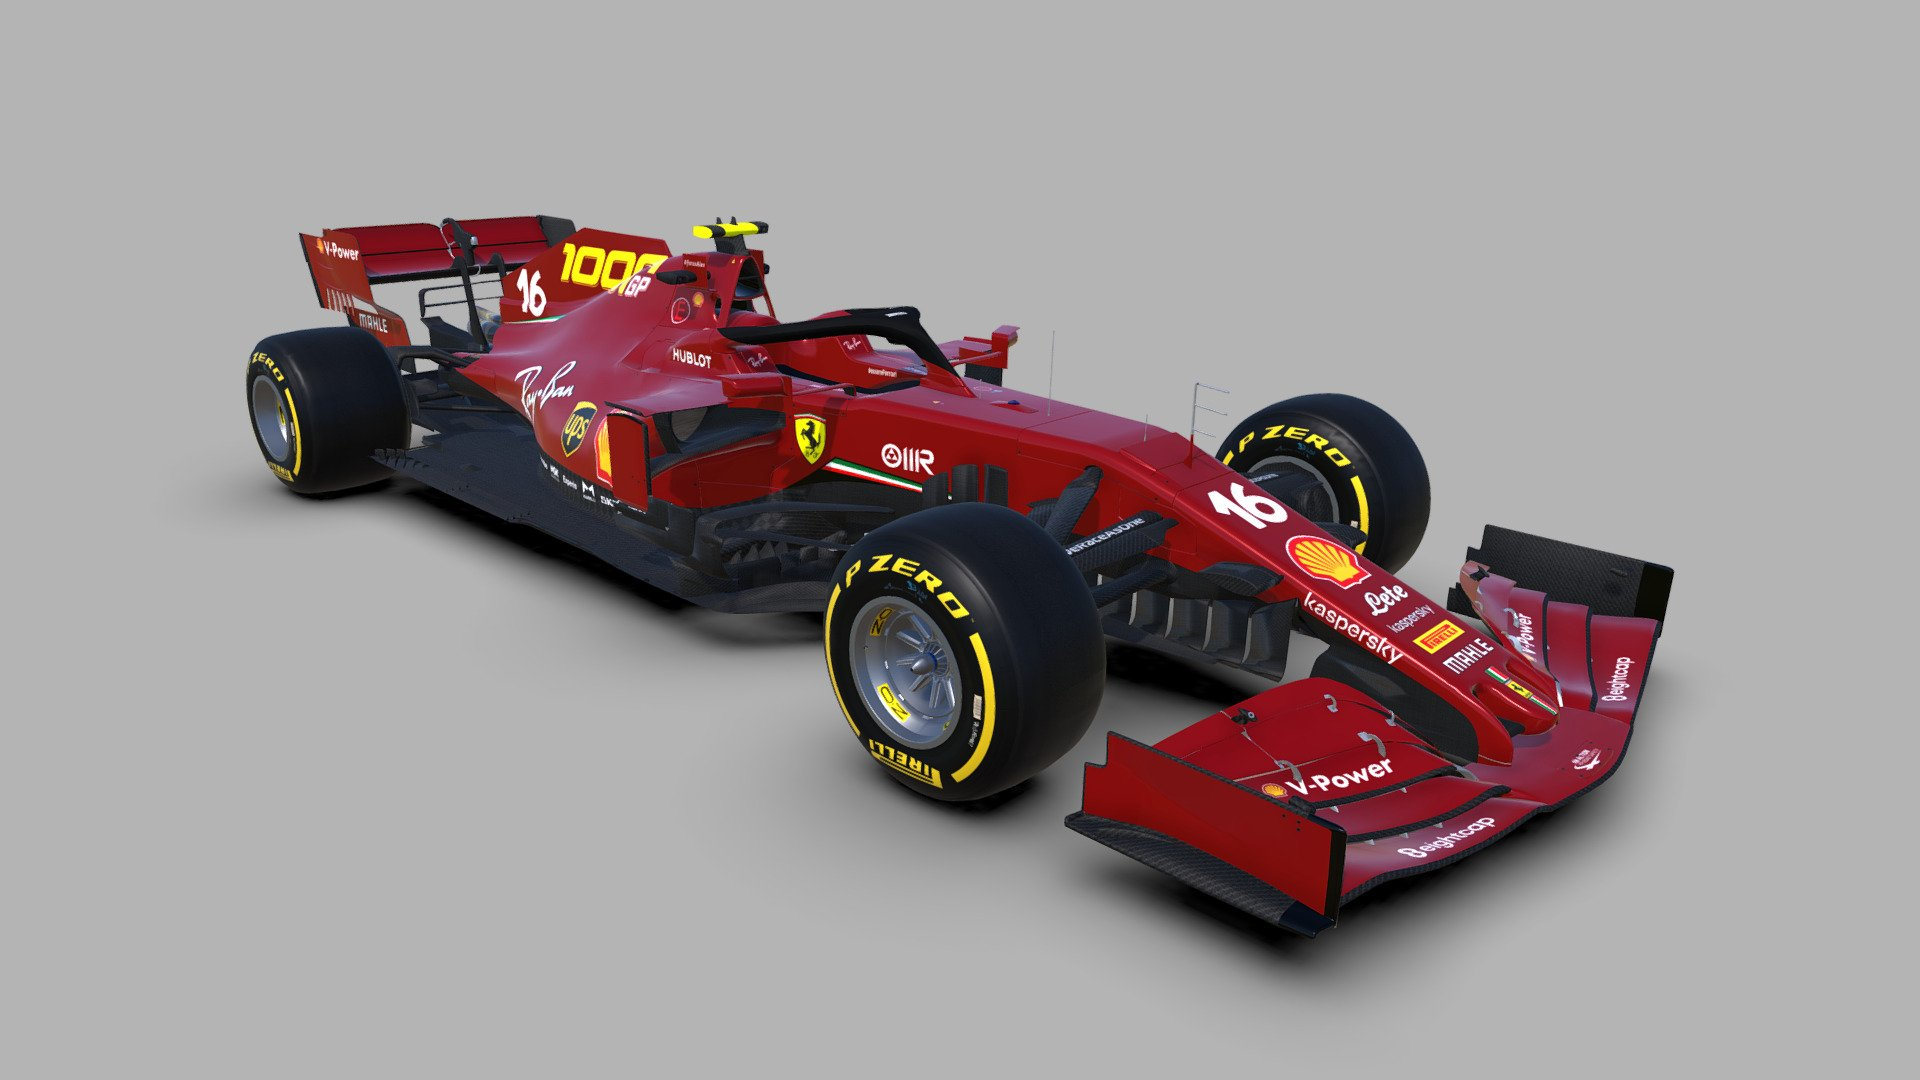 F1 2020 Ferrari Sf1000 1000gp Mugello 3d Model By Excalibur Excalibur 47bf3c0